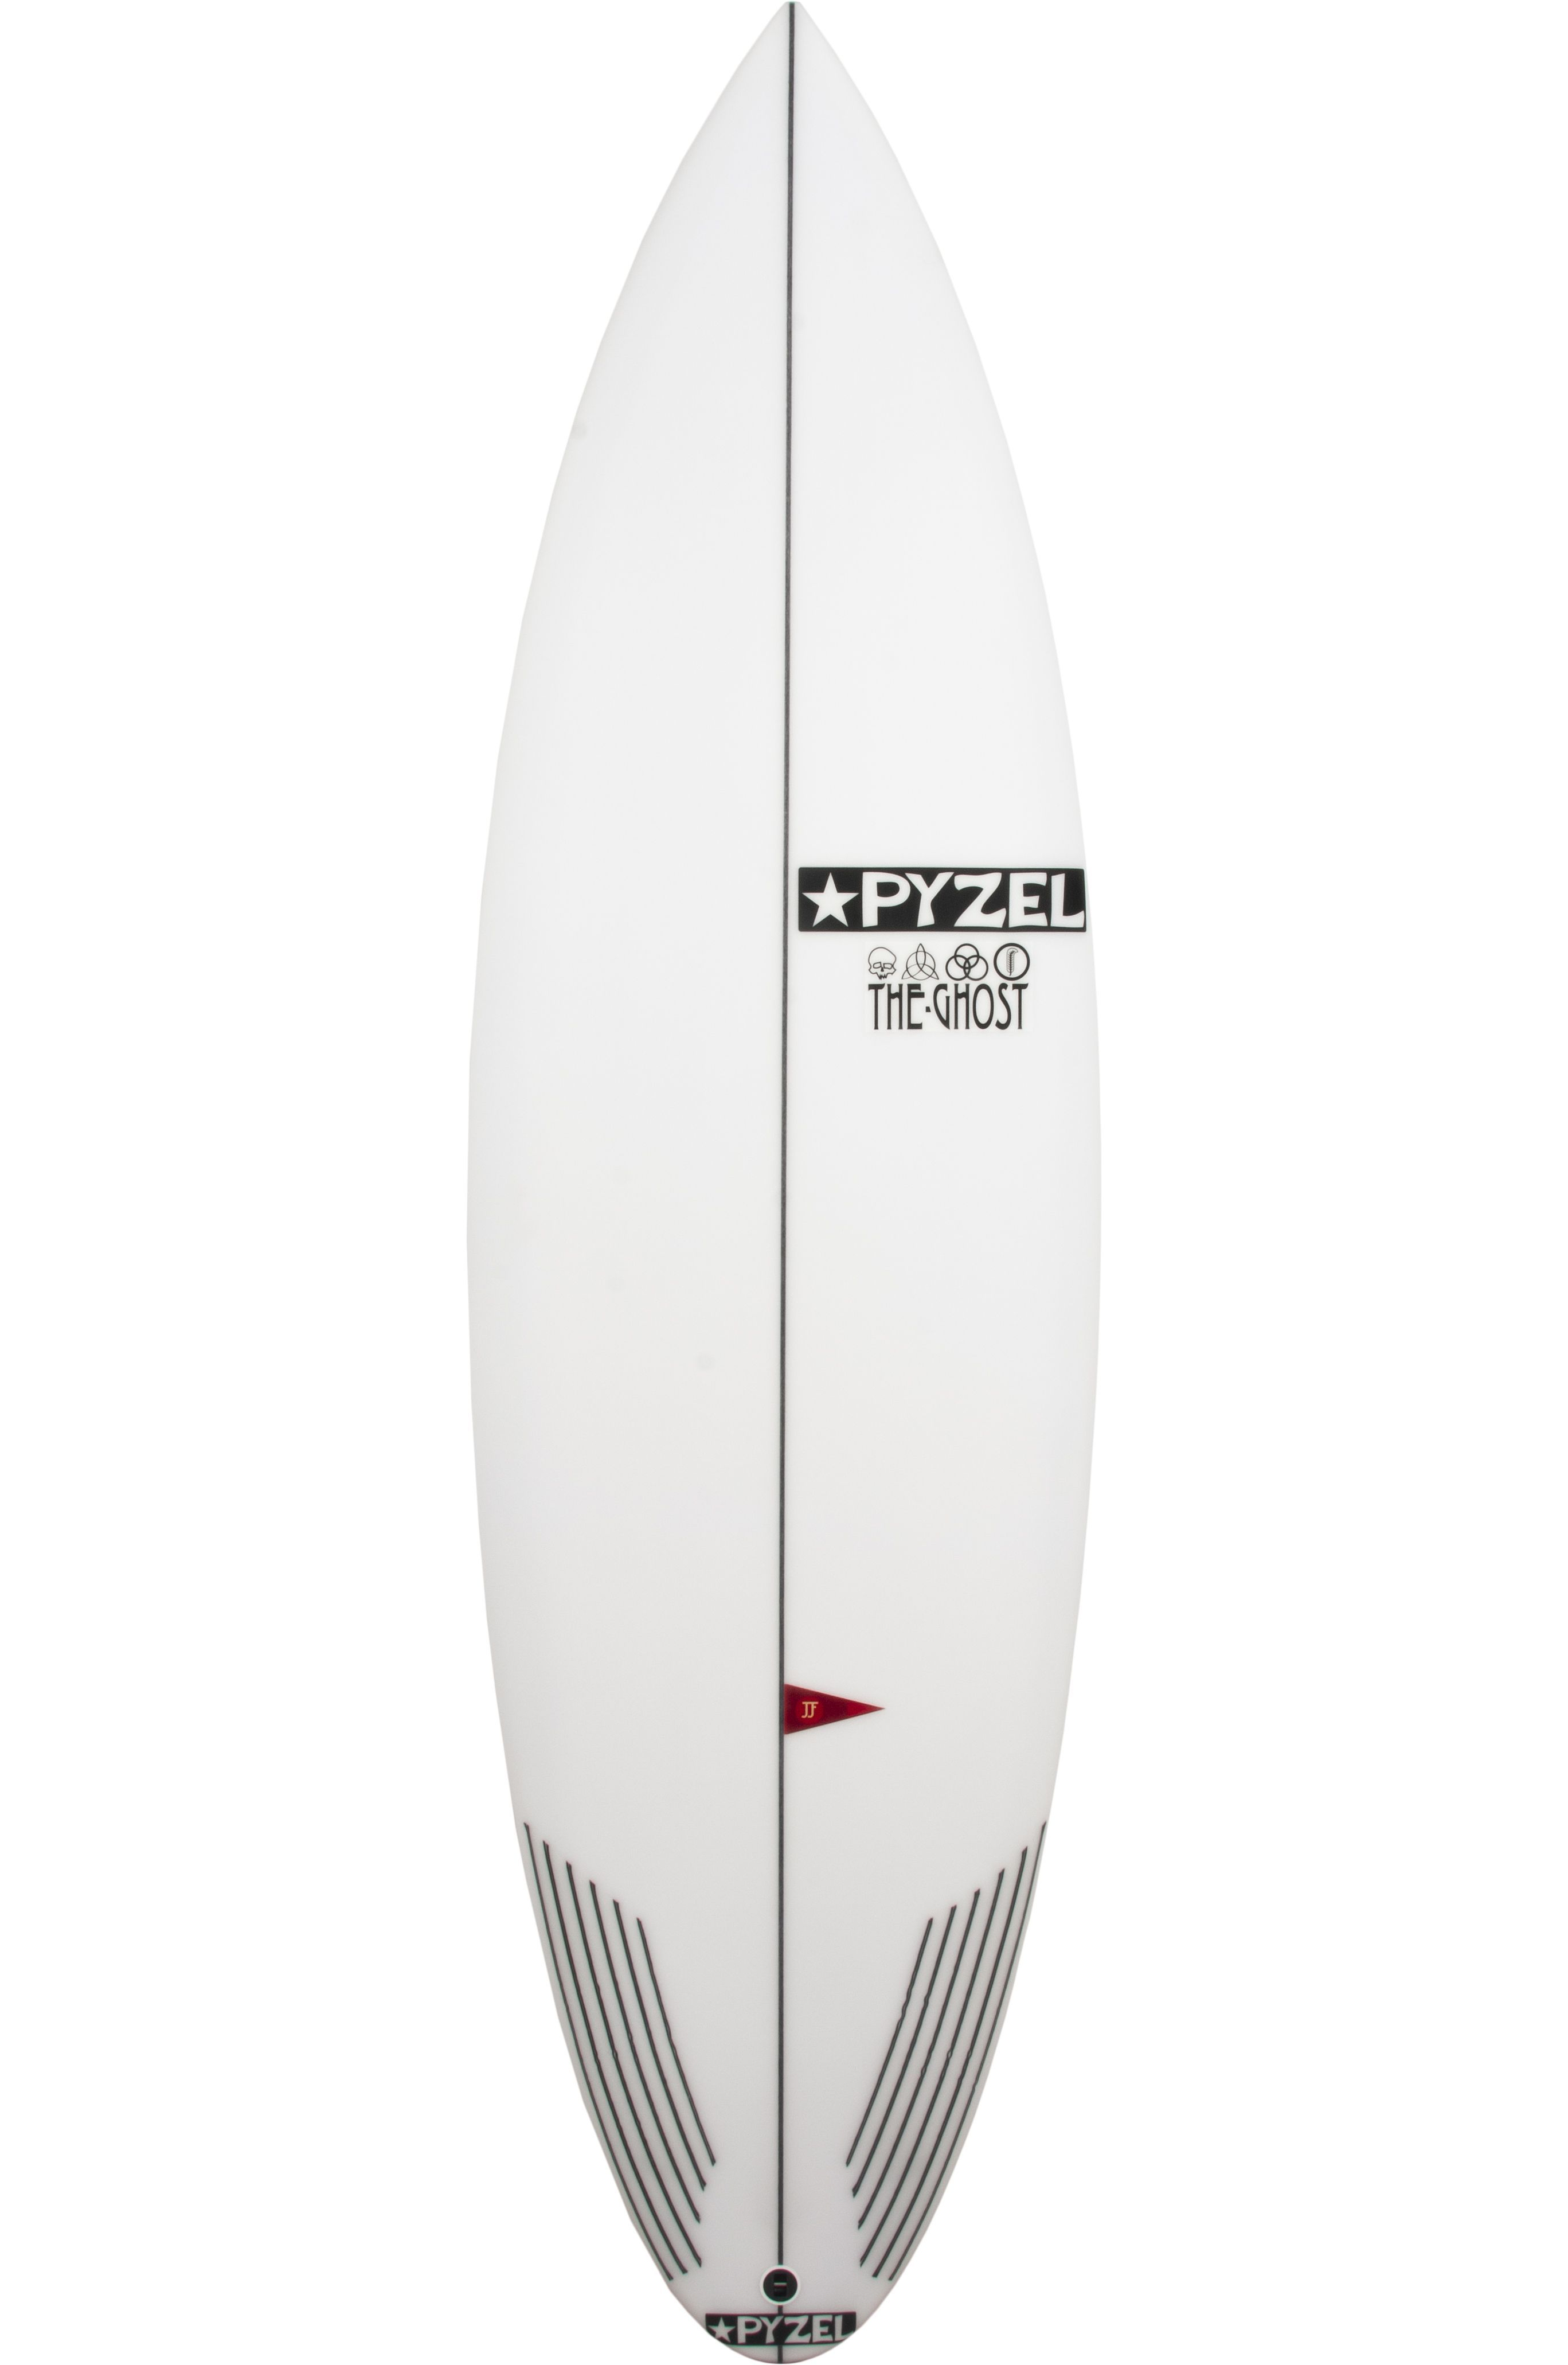 Pyzel Surf Board 6'5 GHOST Round Pin Tail - White FCS II Multisystem 6ft5